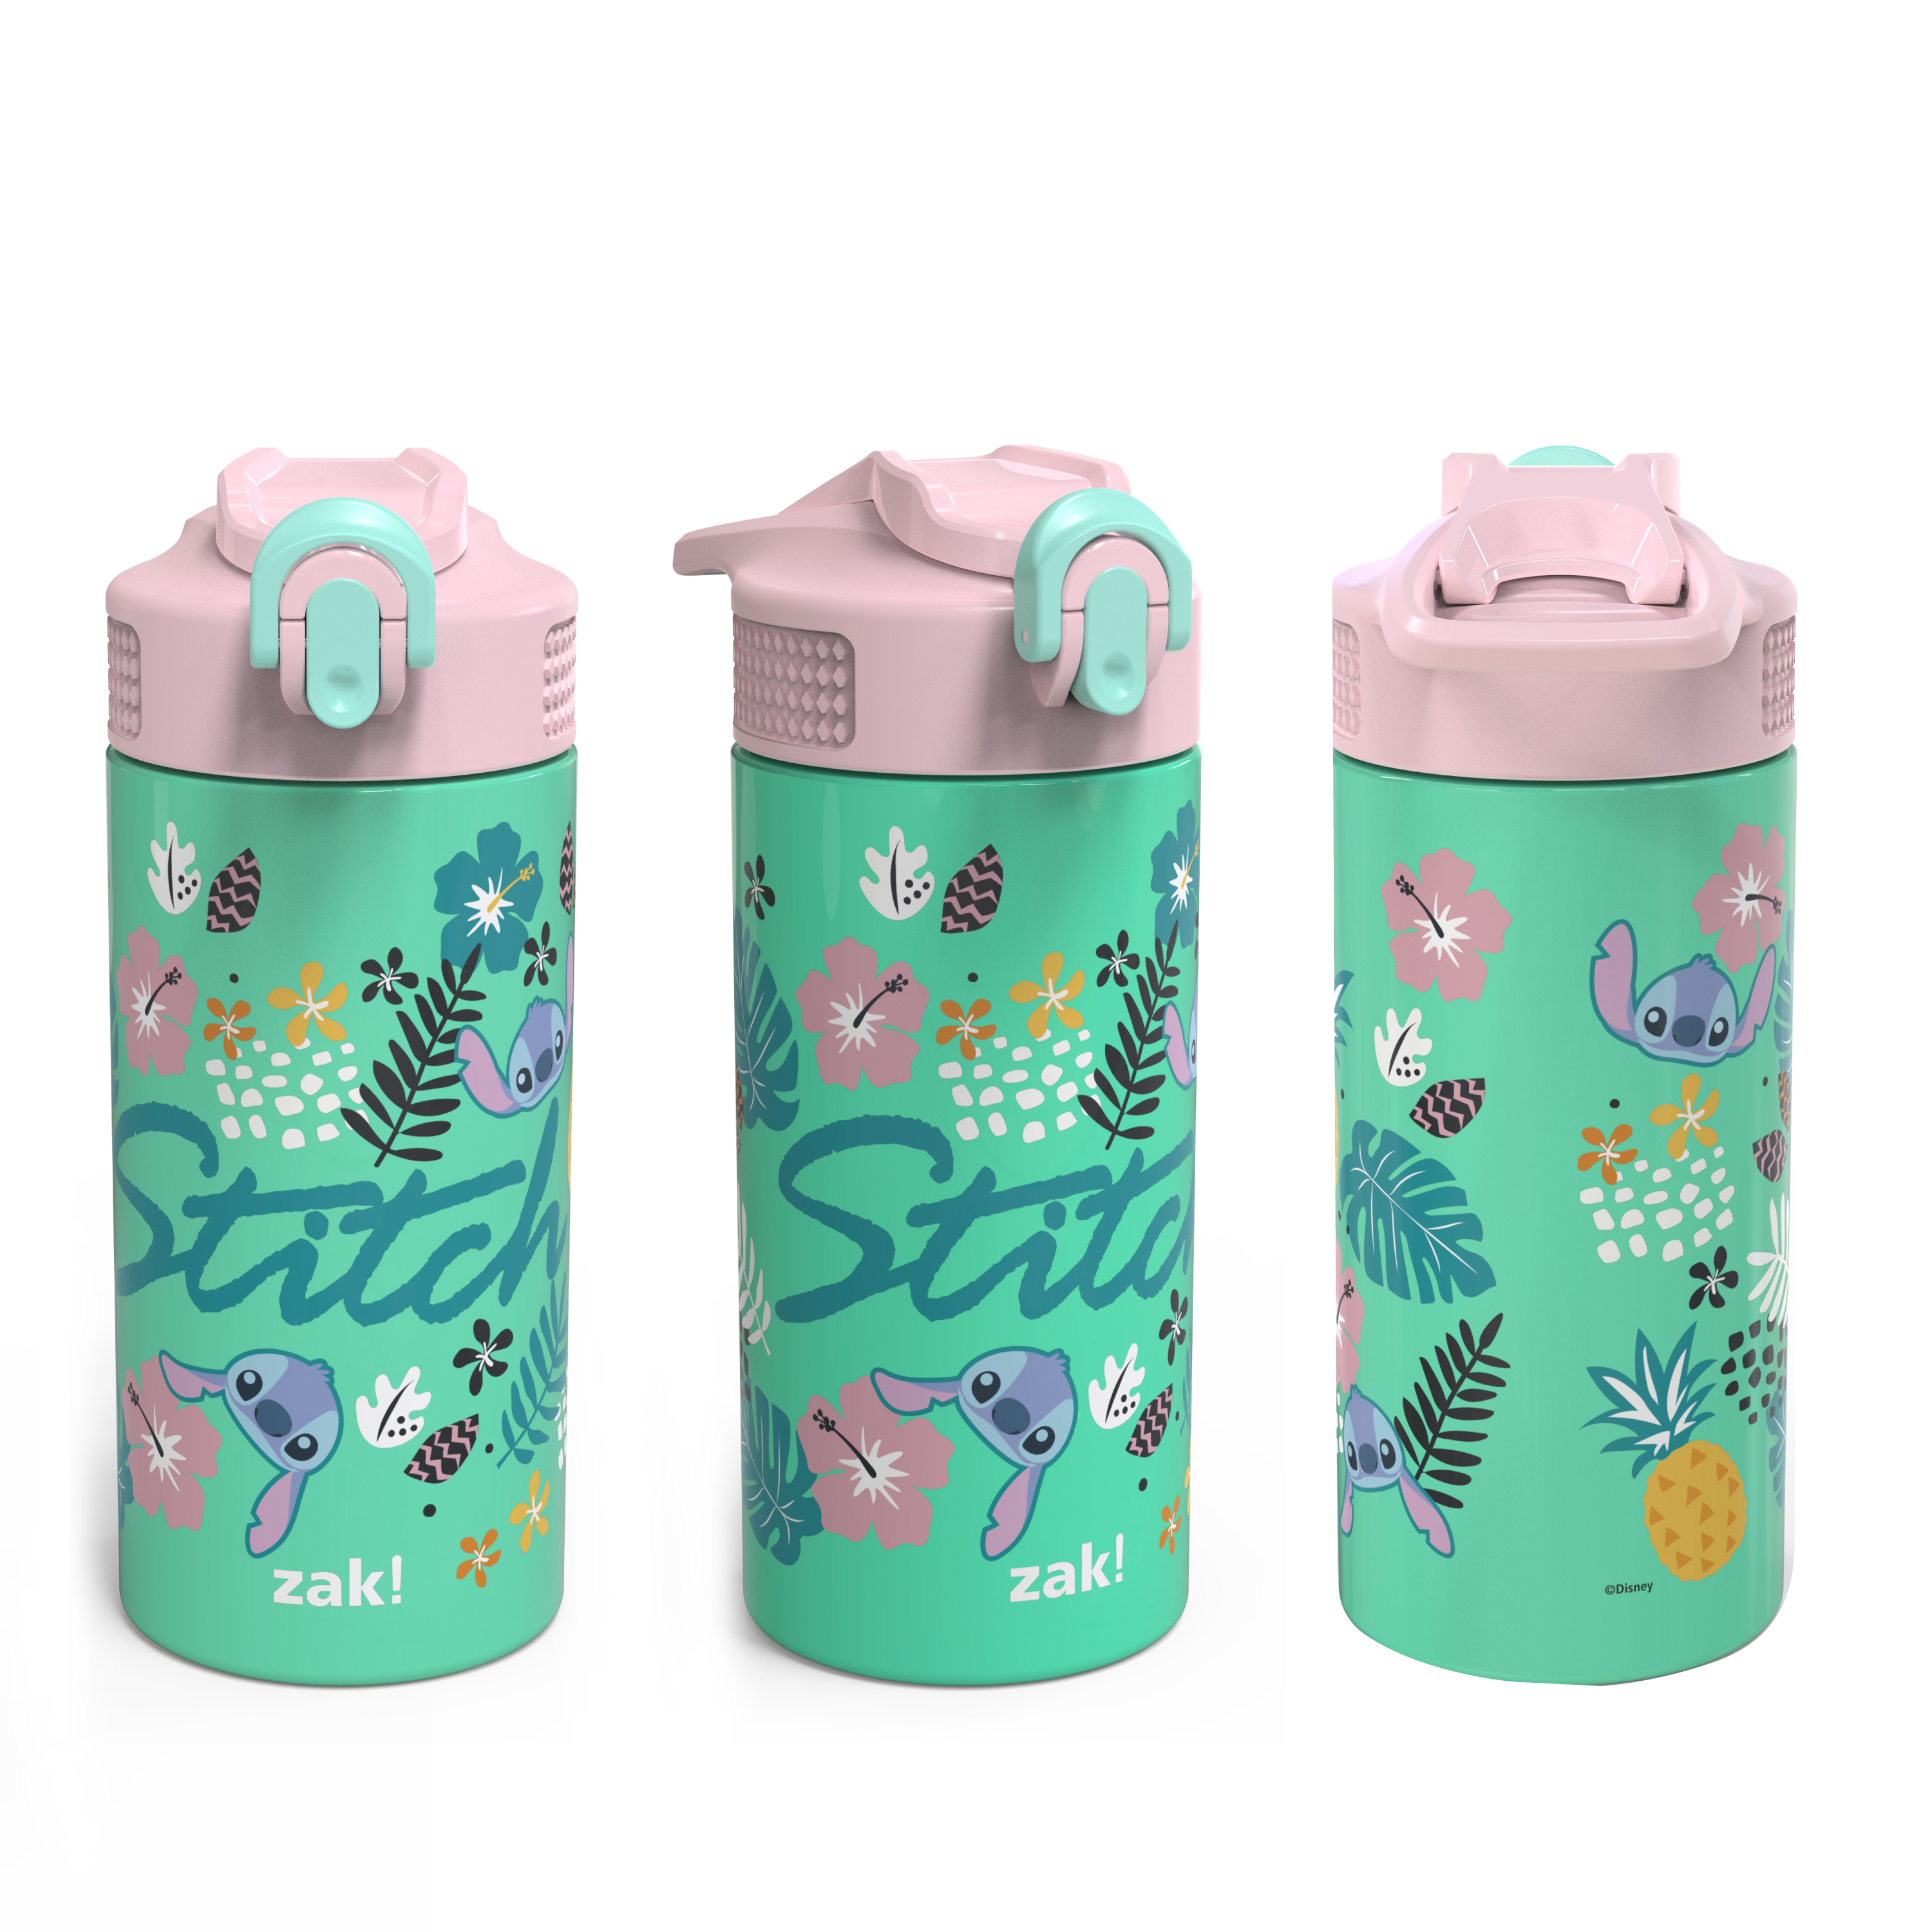 Disney 14 ounce Stainless Steel Vacuum Insulated Water Bottle, Lilo and Stitch slideshow image 6